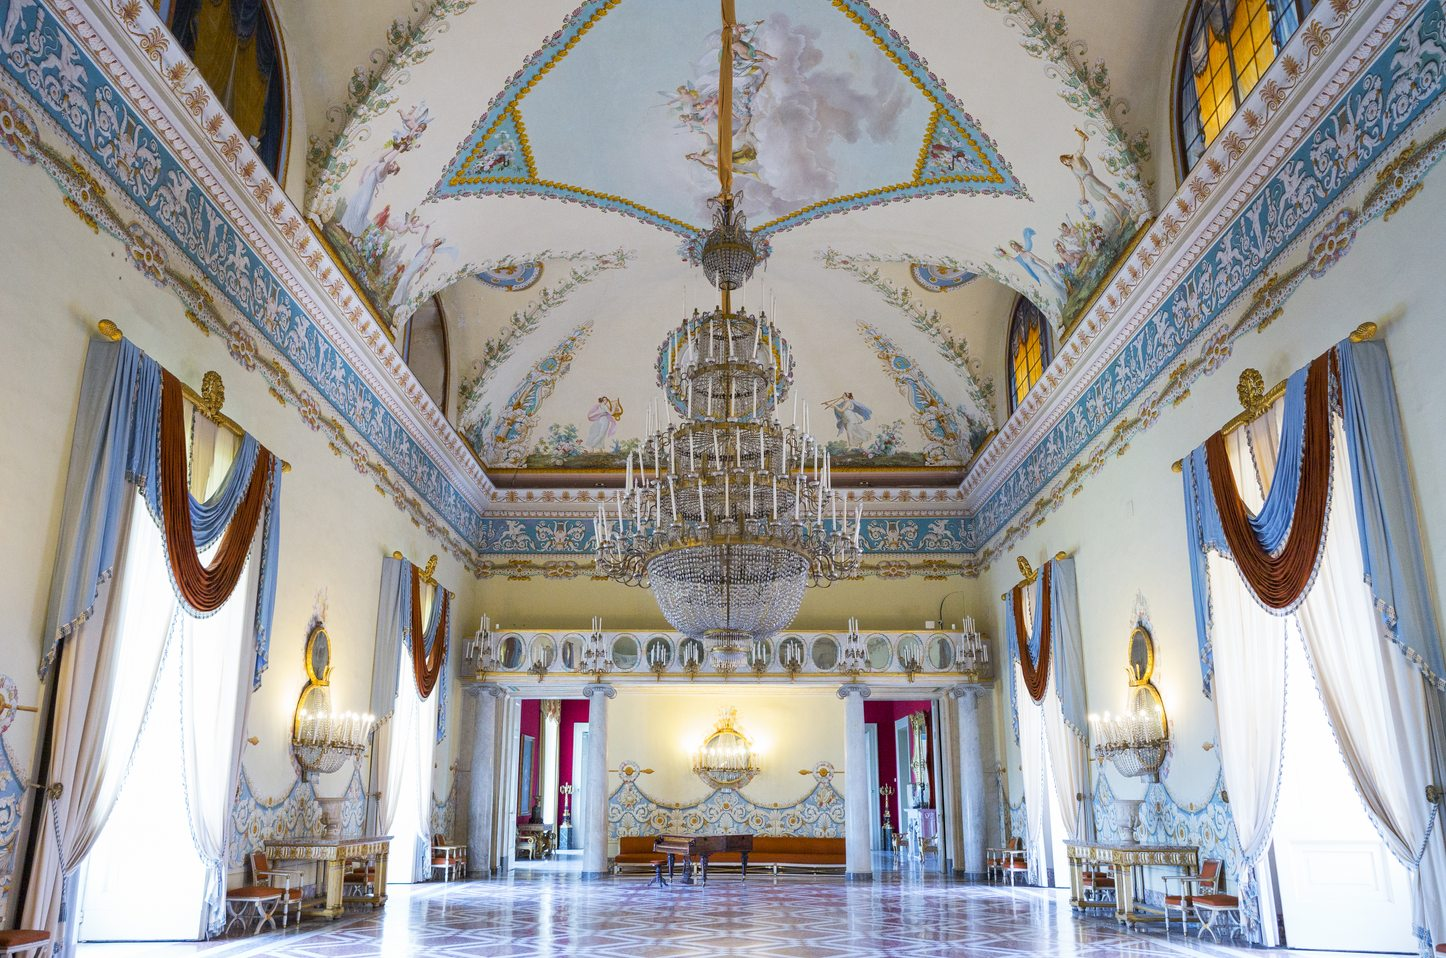 Royal Palace of Naples Image 1